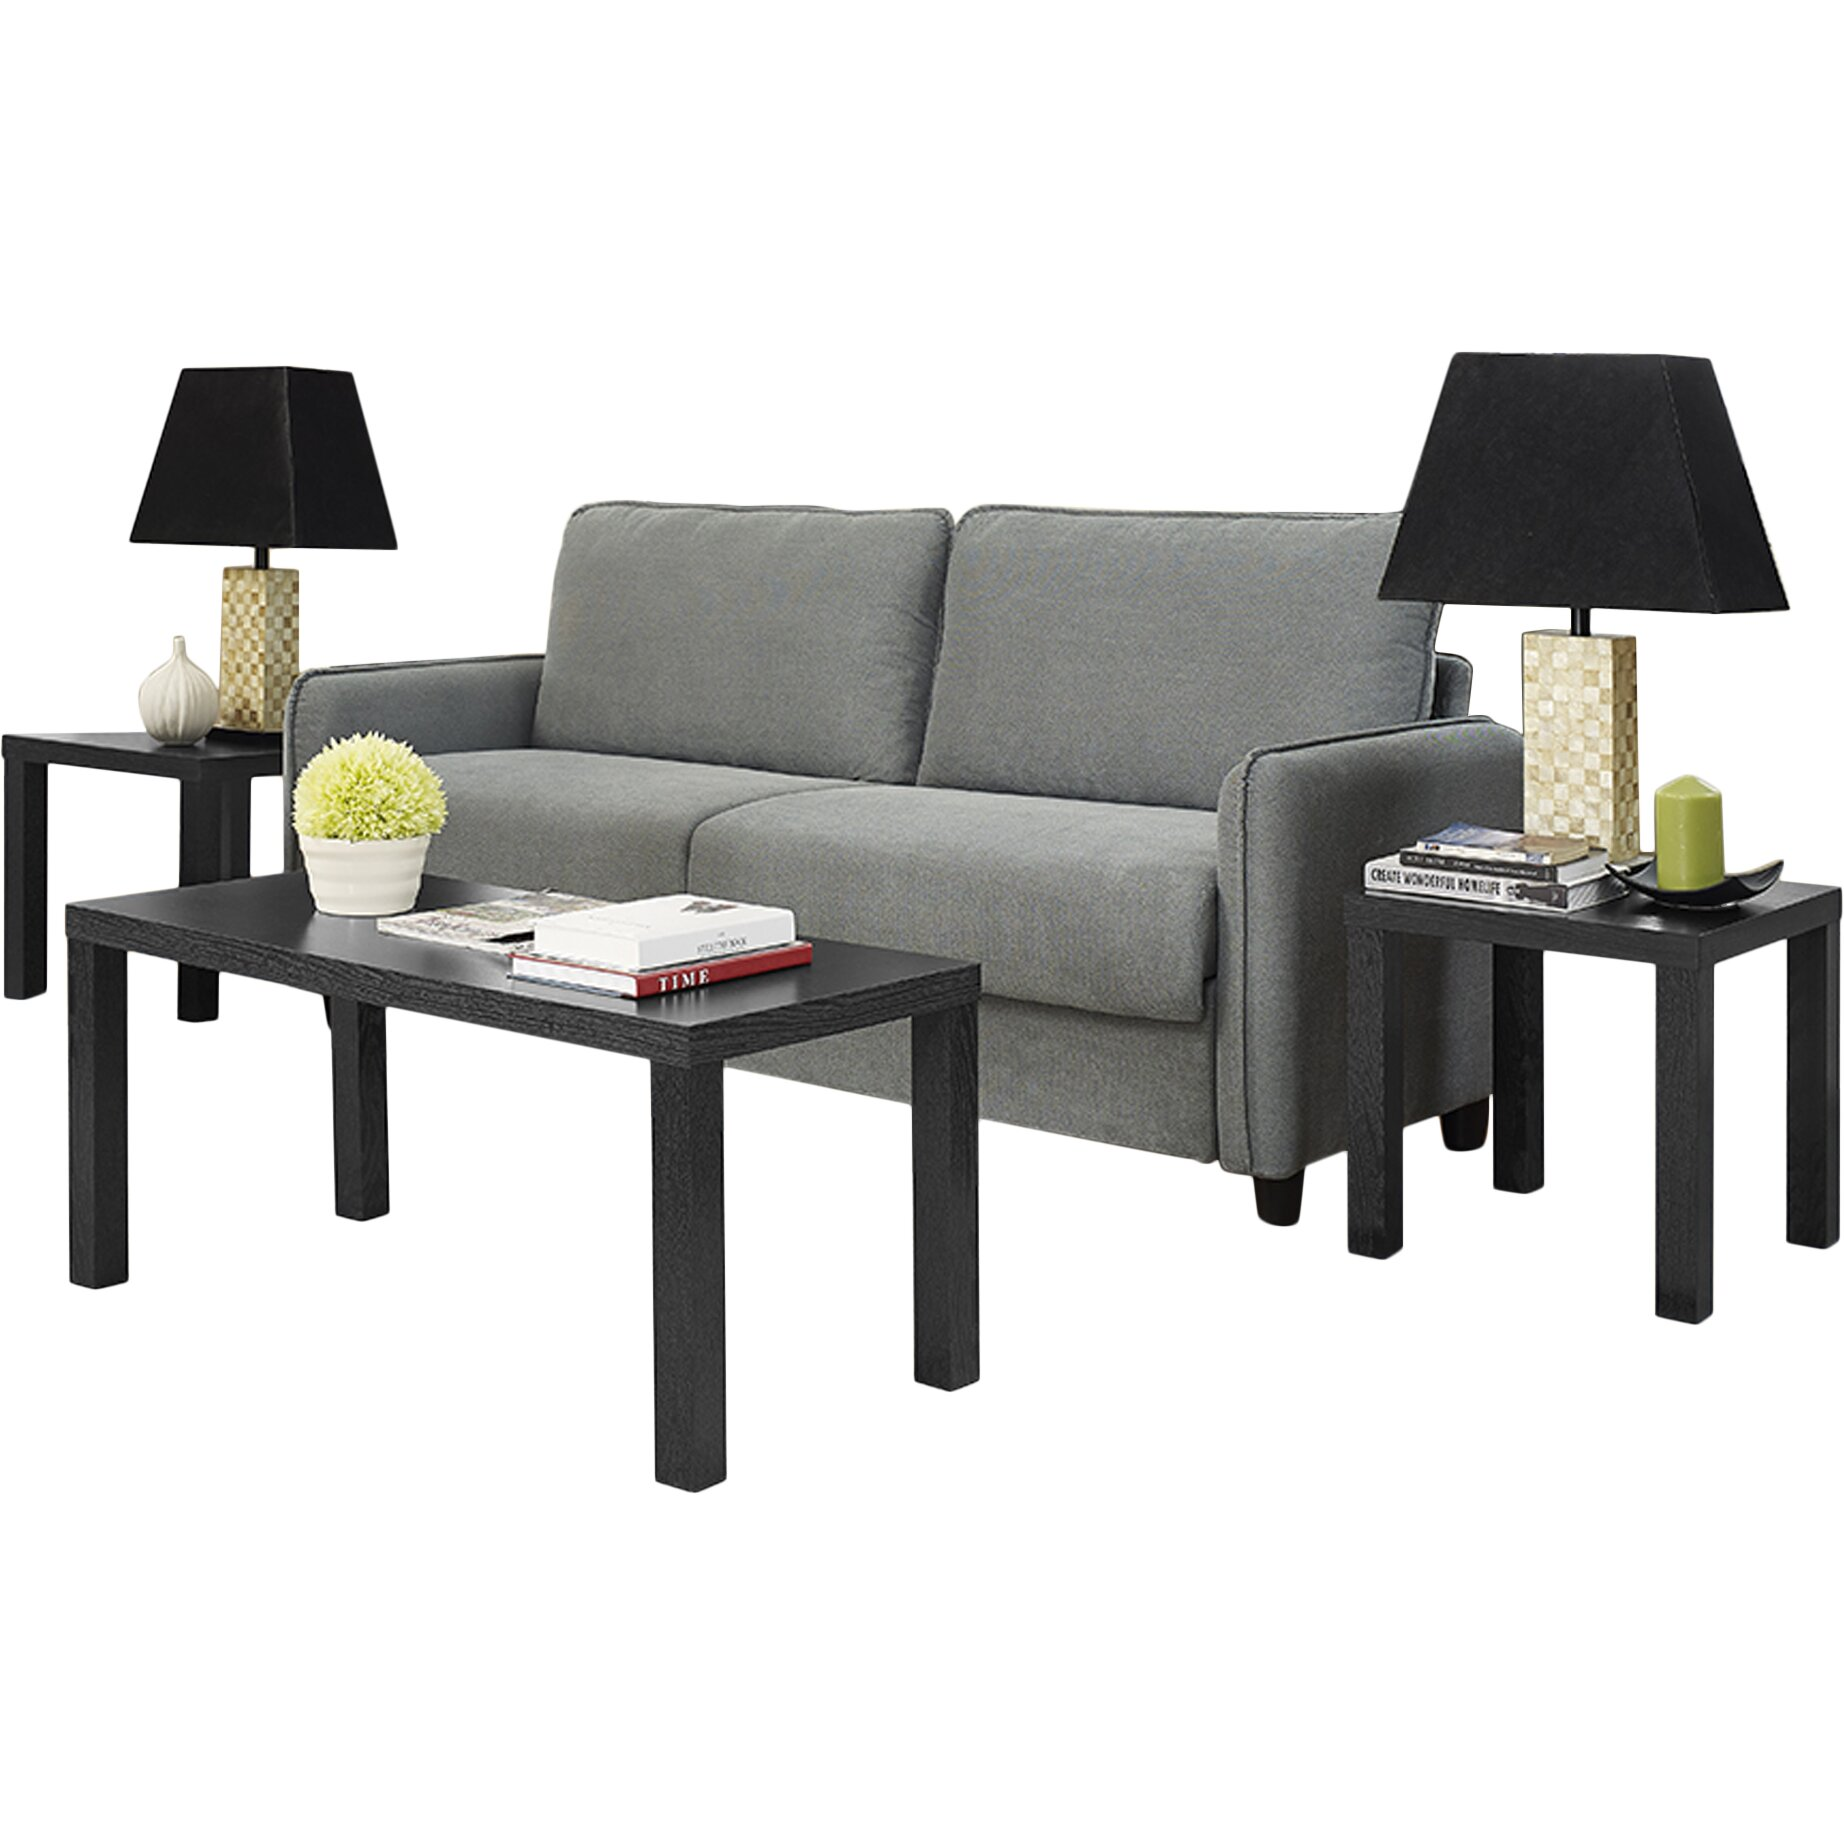 Veropeso 3 Piece Coffee Table Set: Beachcrest Home Sunbury 3 Piece Coffee Table Set & Reviews